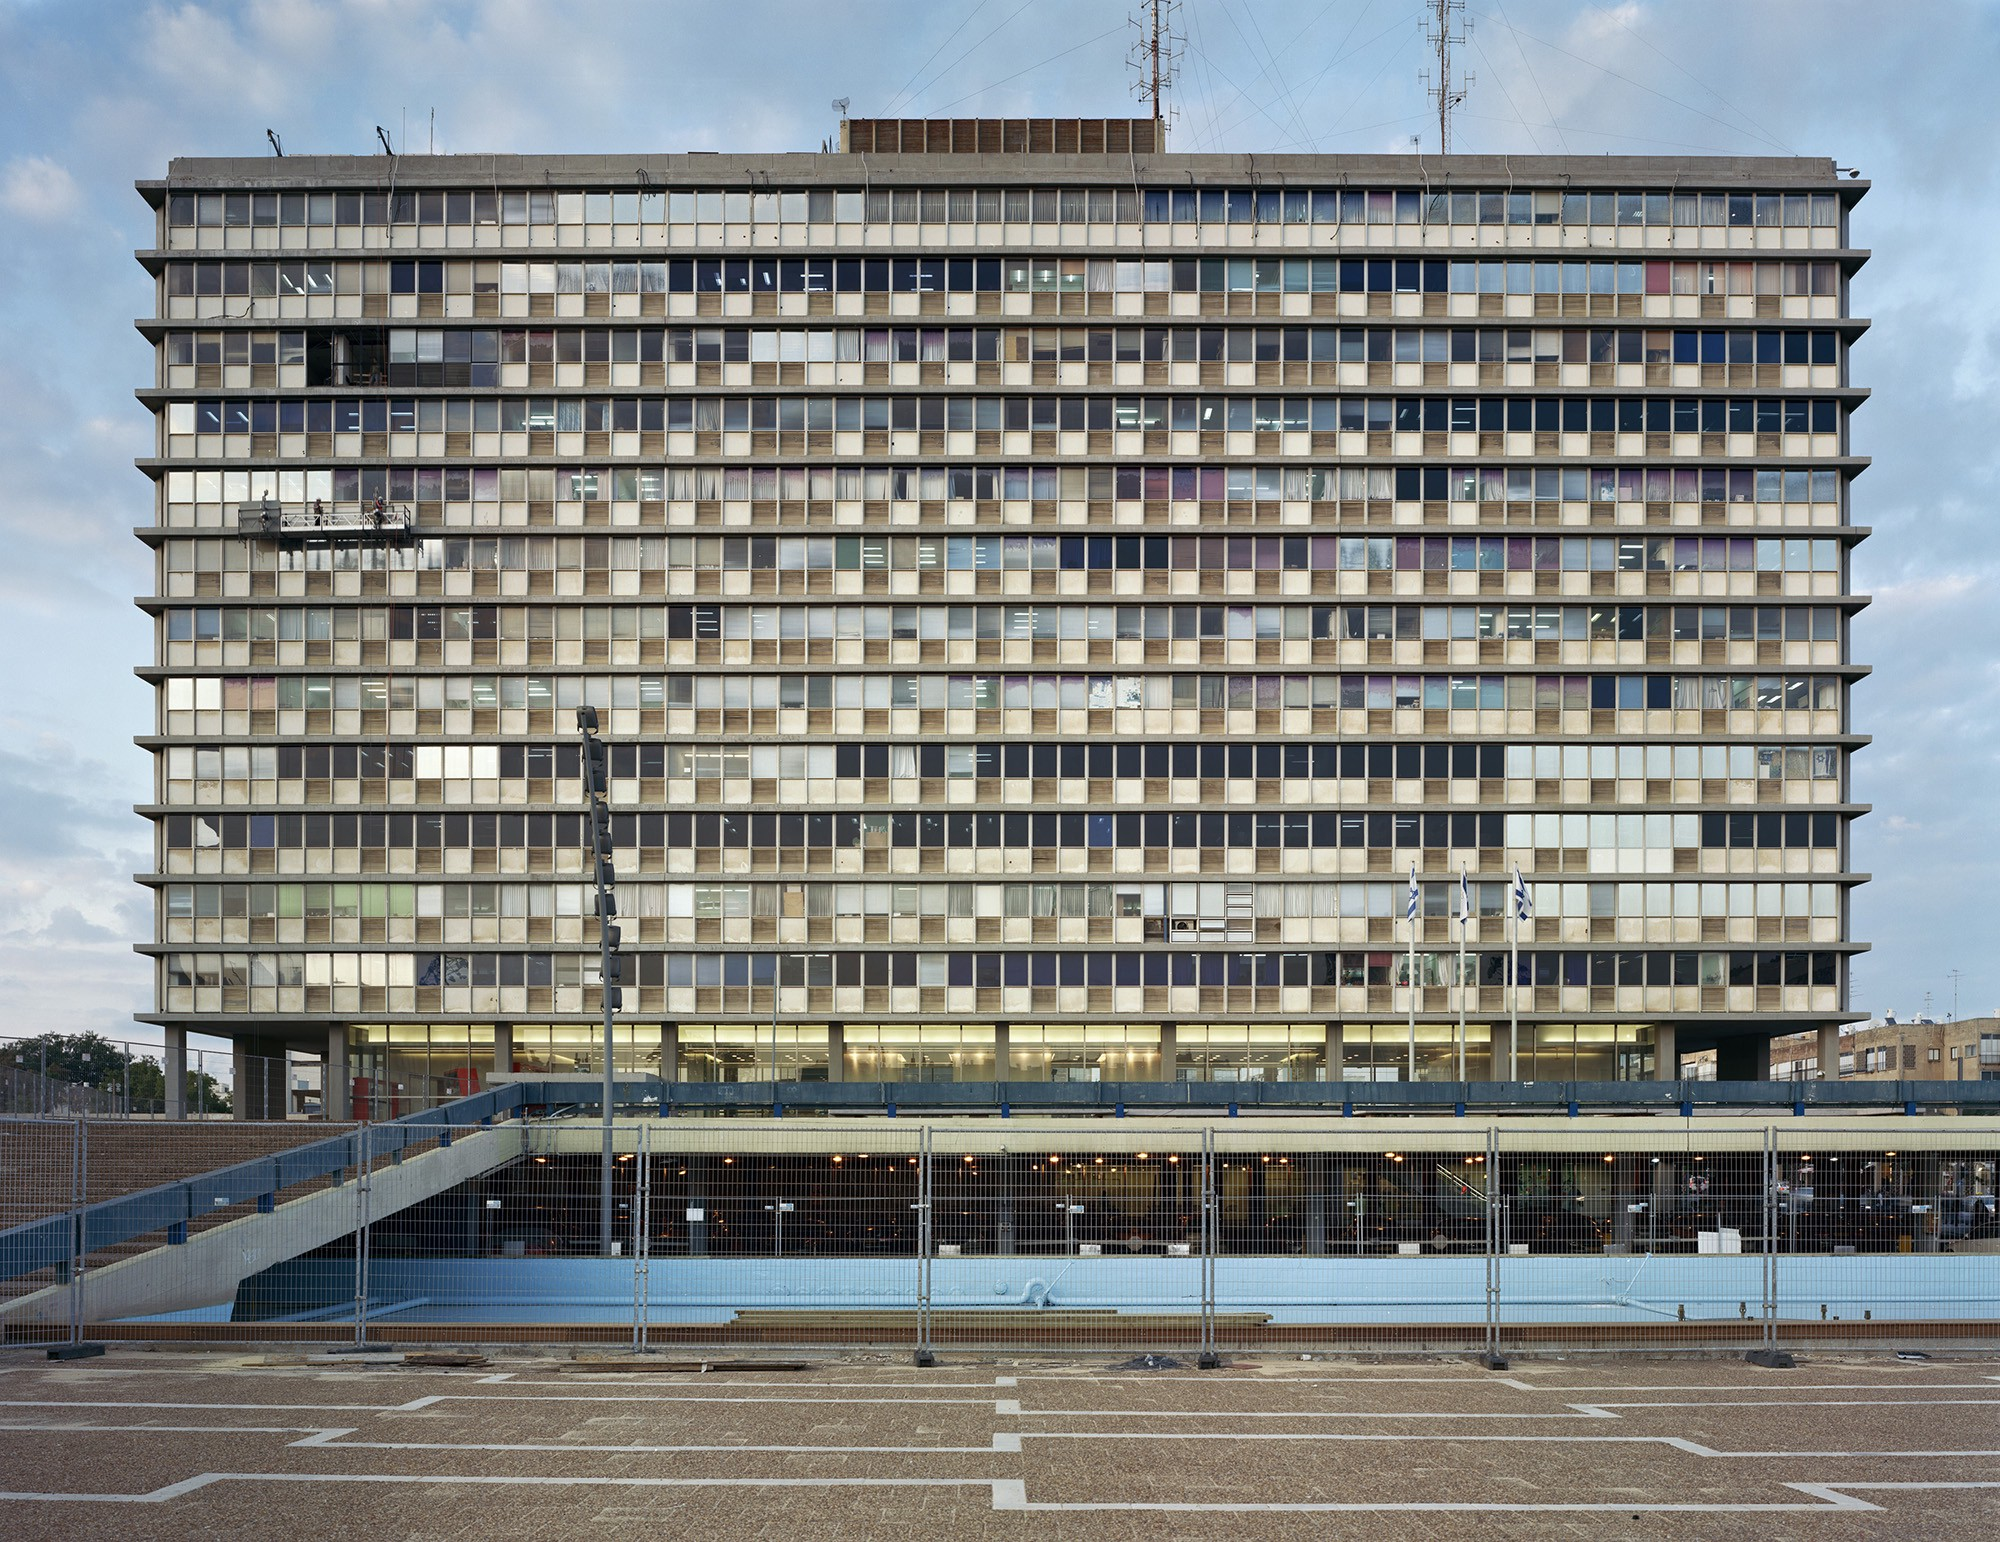 Thomas Struth. in conversation with Charlotte Cotton | by This Place | This  Place | Medium